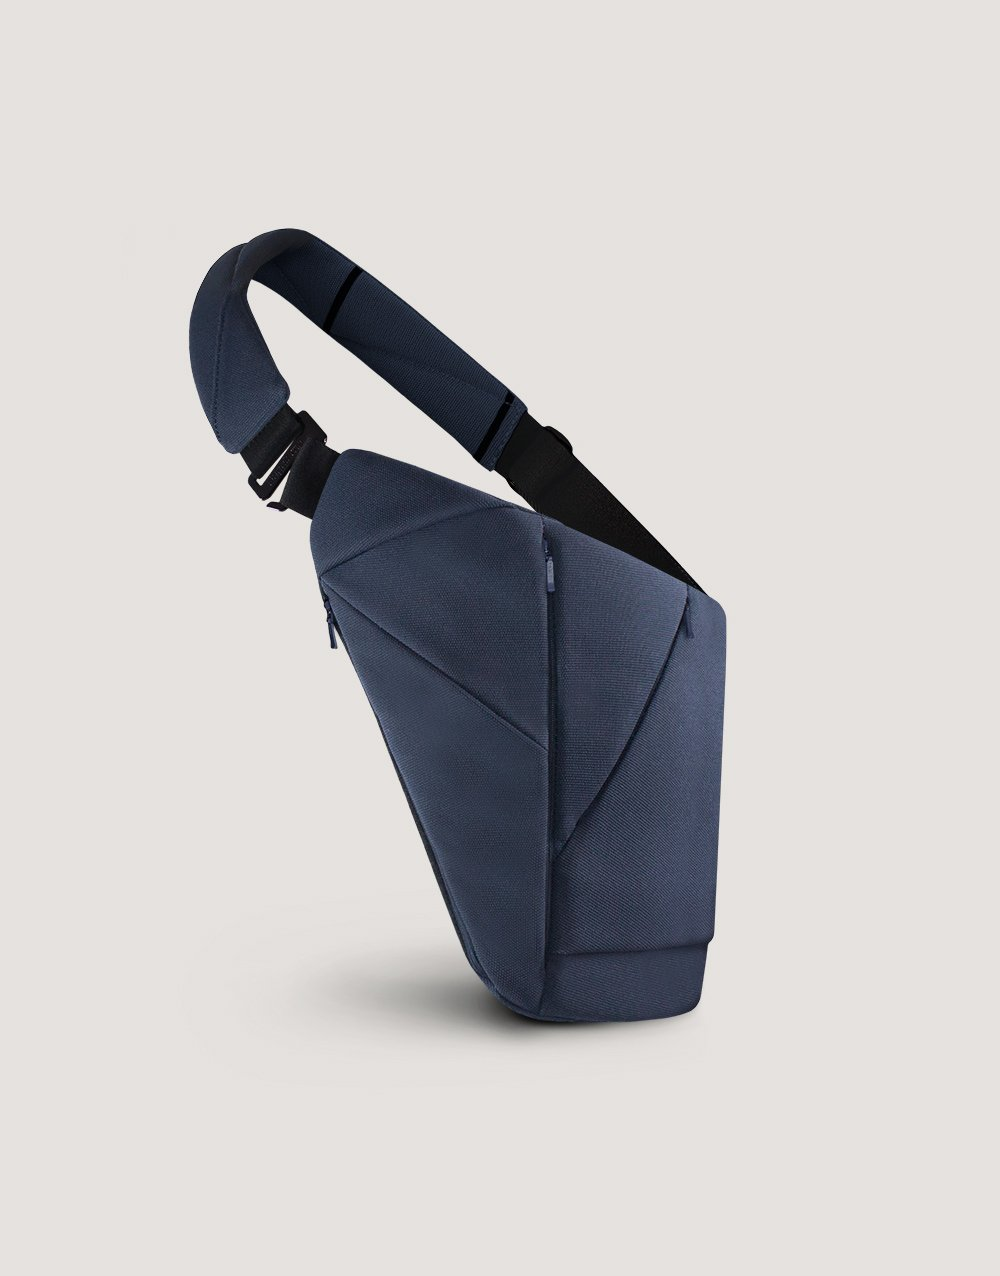 Blue textile crossbody bag by Baggizmo